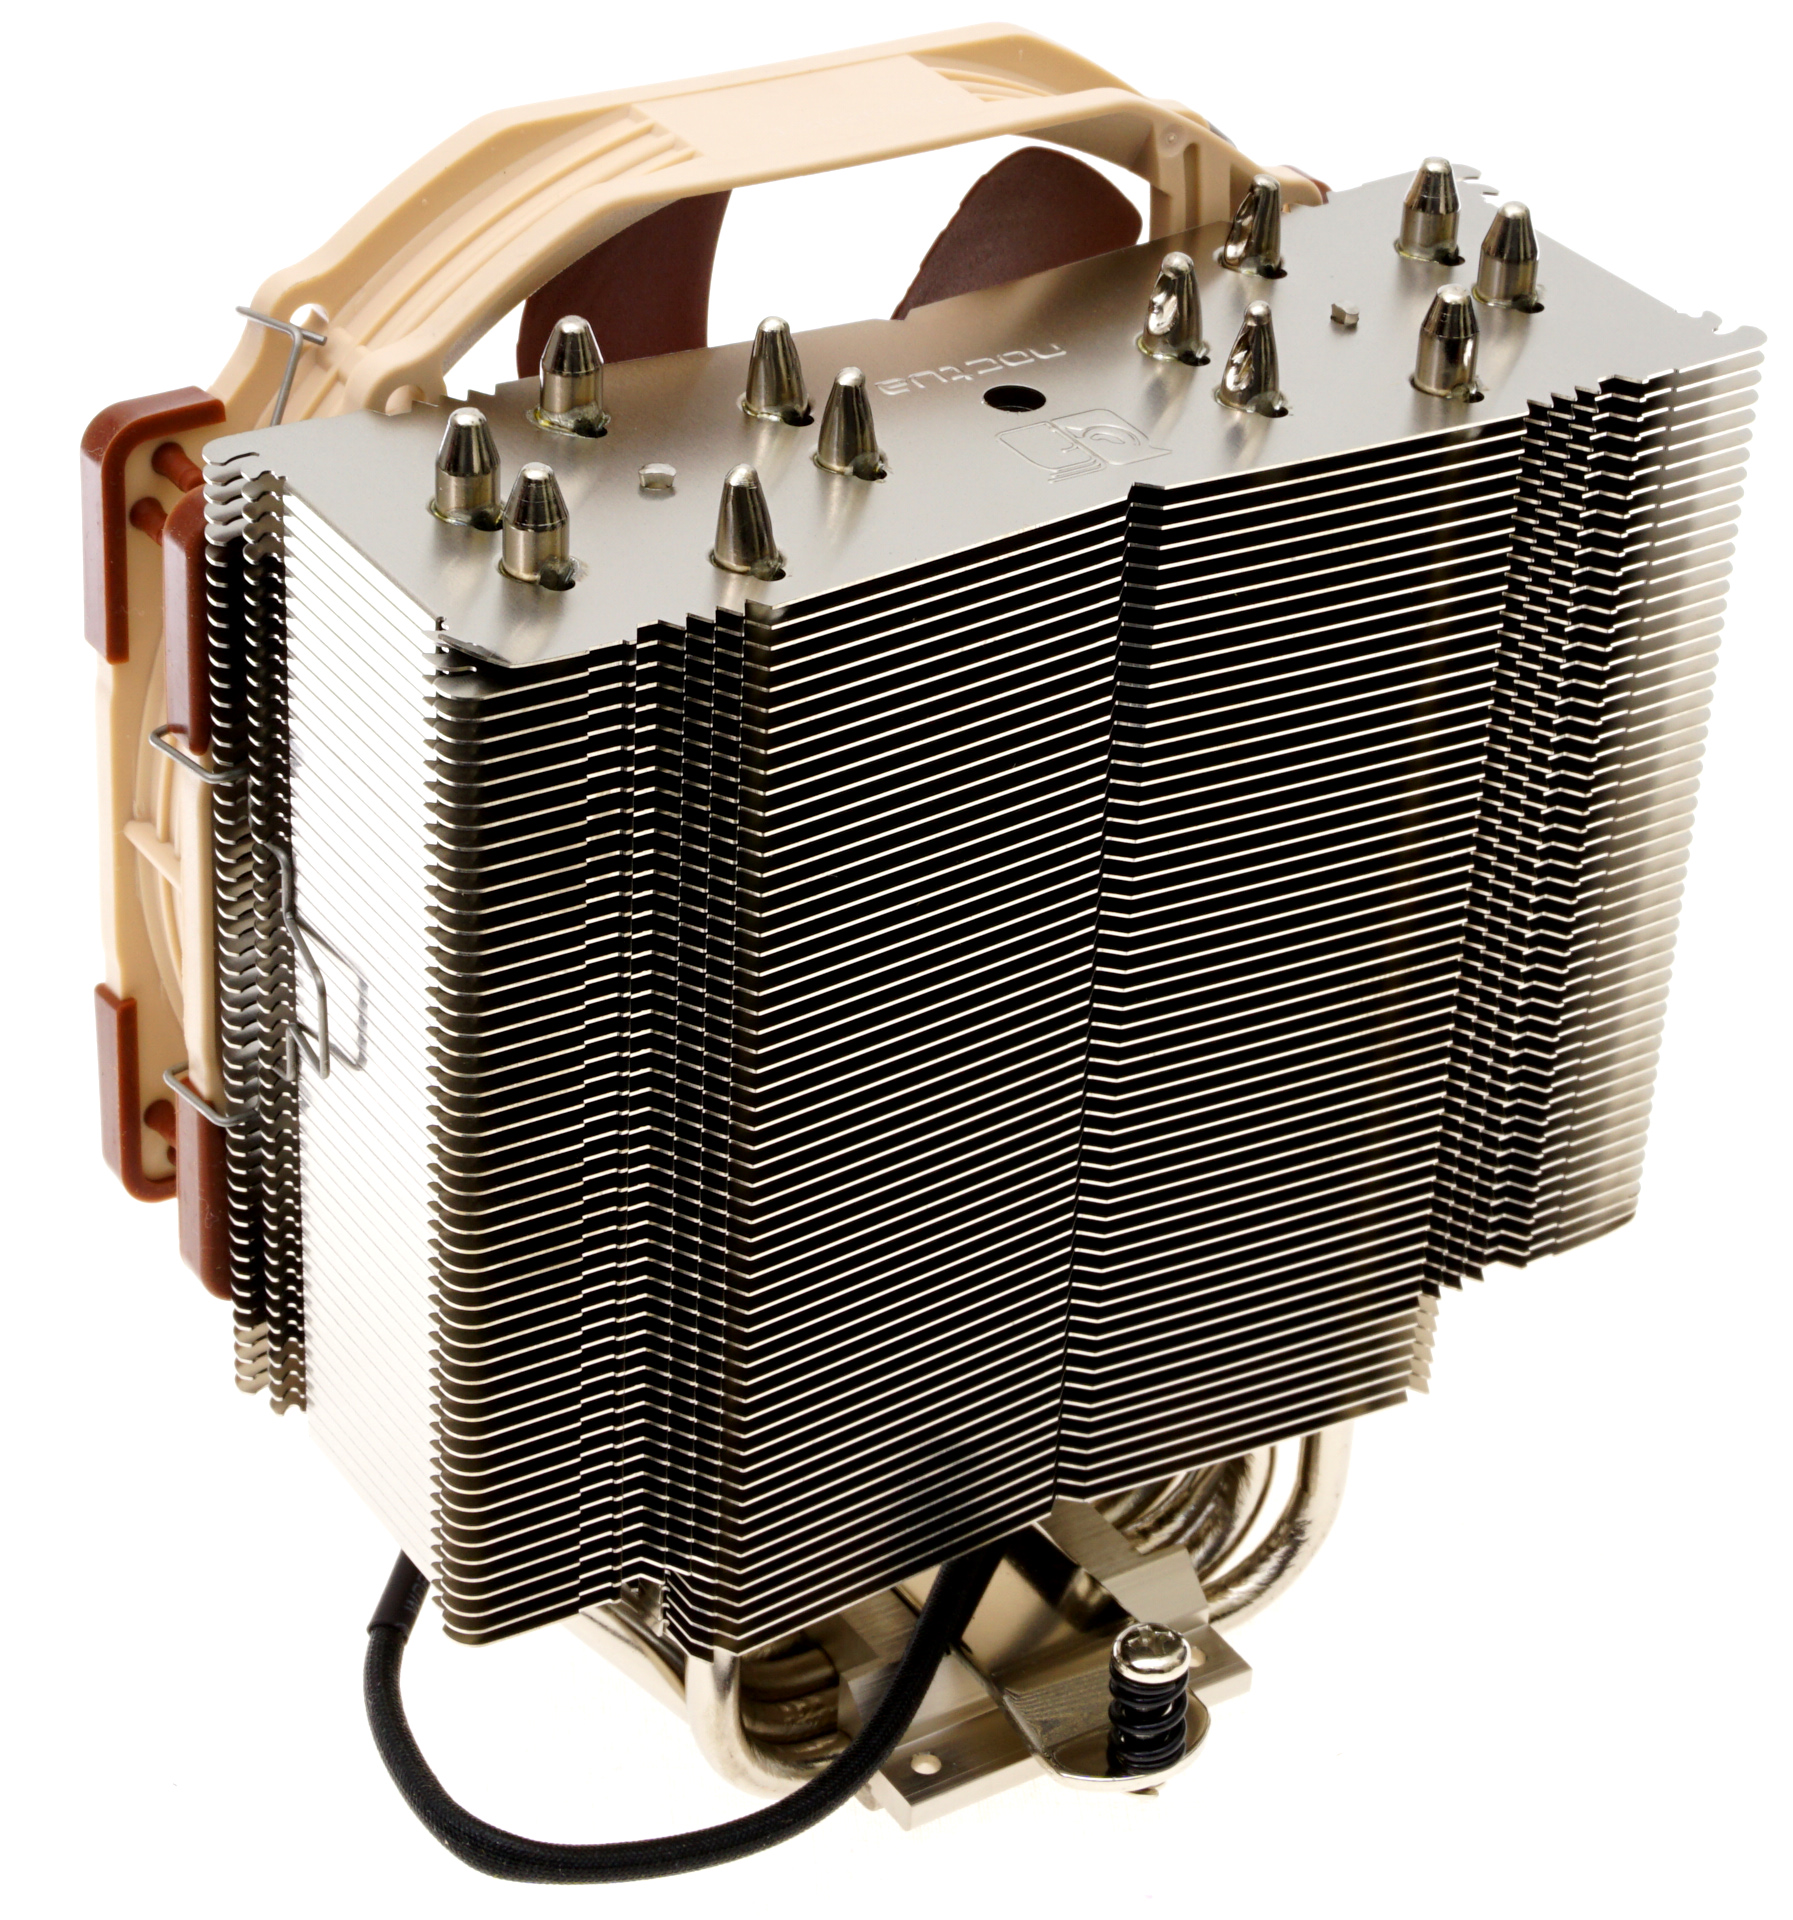 Noctua Nh U14s The 140mm Slim Tower Cpu Cooler Roundup Thin Makes Use Of Six Thick Heatpipes To Transfer Heat From Base Its Fin Array Each Heatpipe Expands Either Side